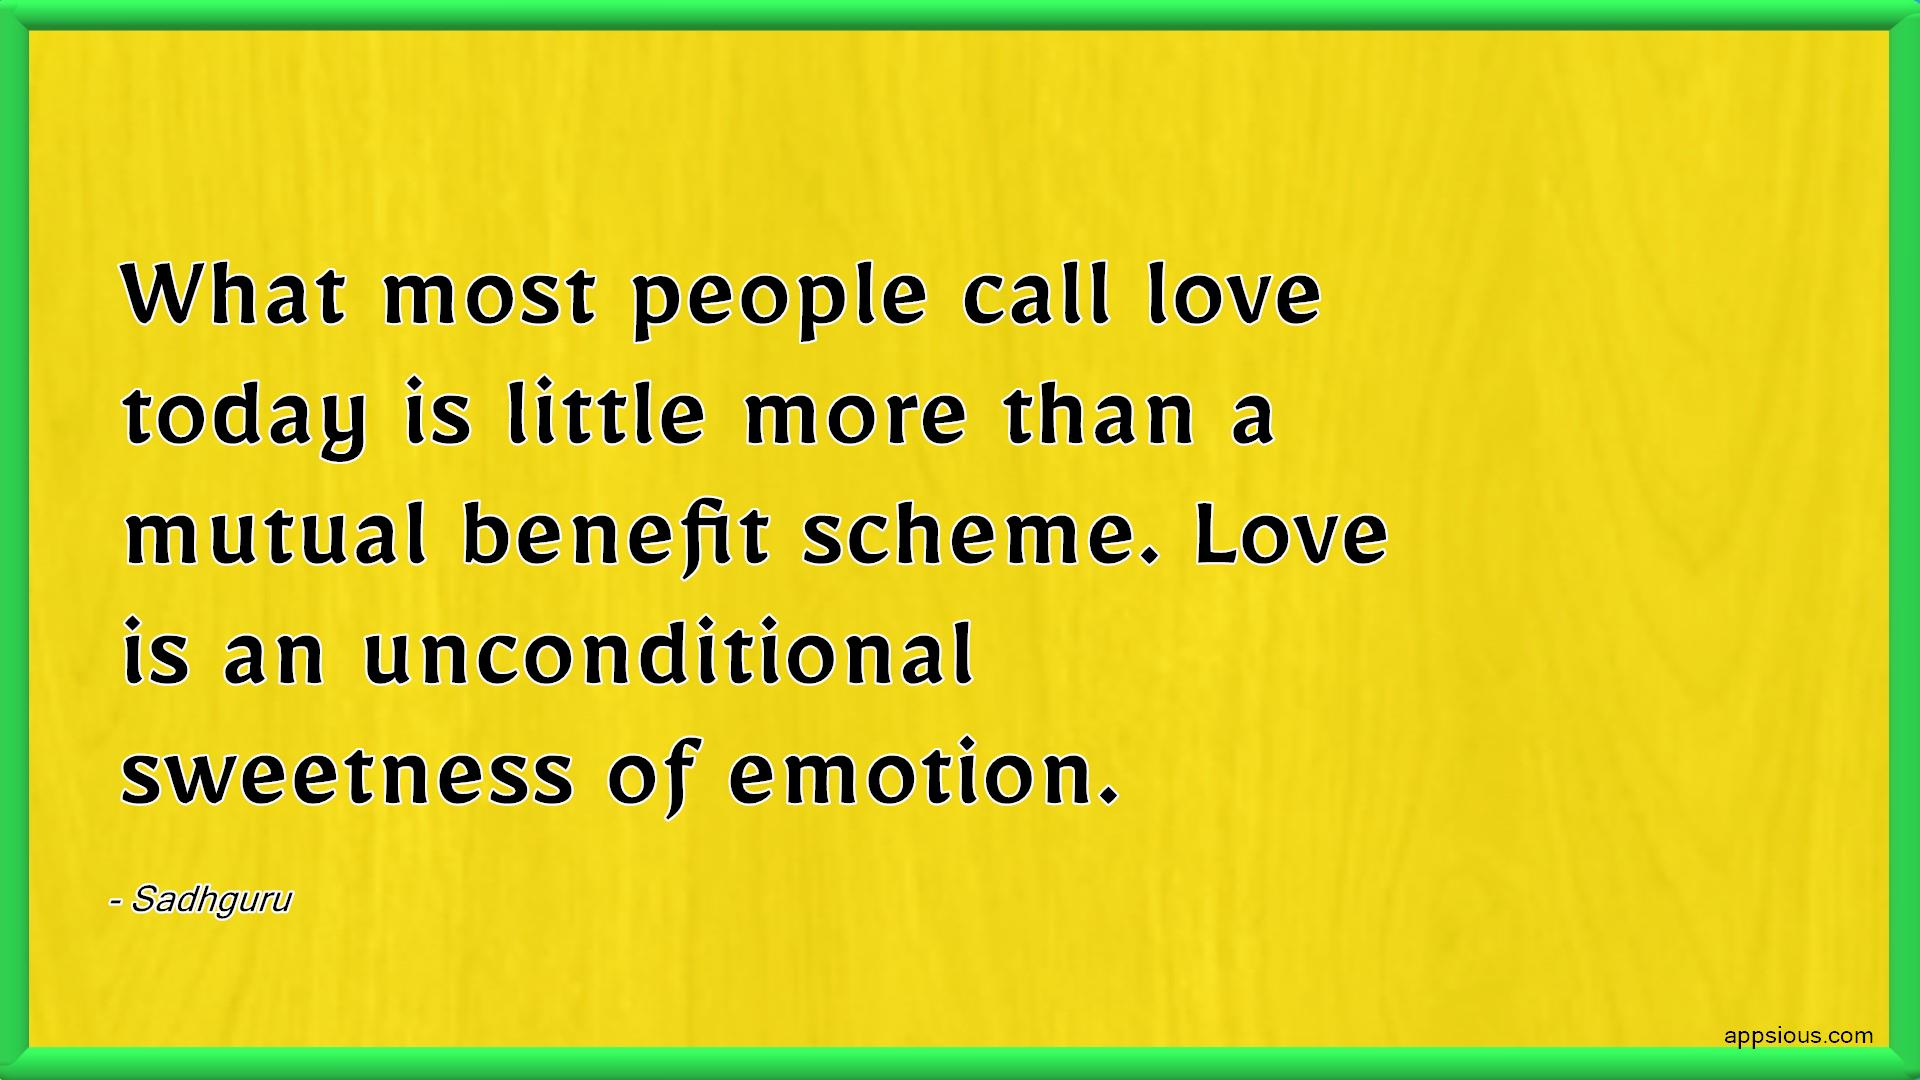 What most people call love today is little more than a mutual benefit scheme. Love is an unconditional sweetness of emotion.